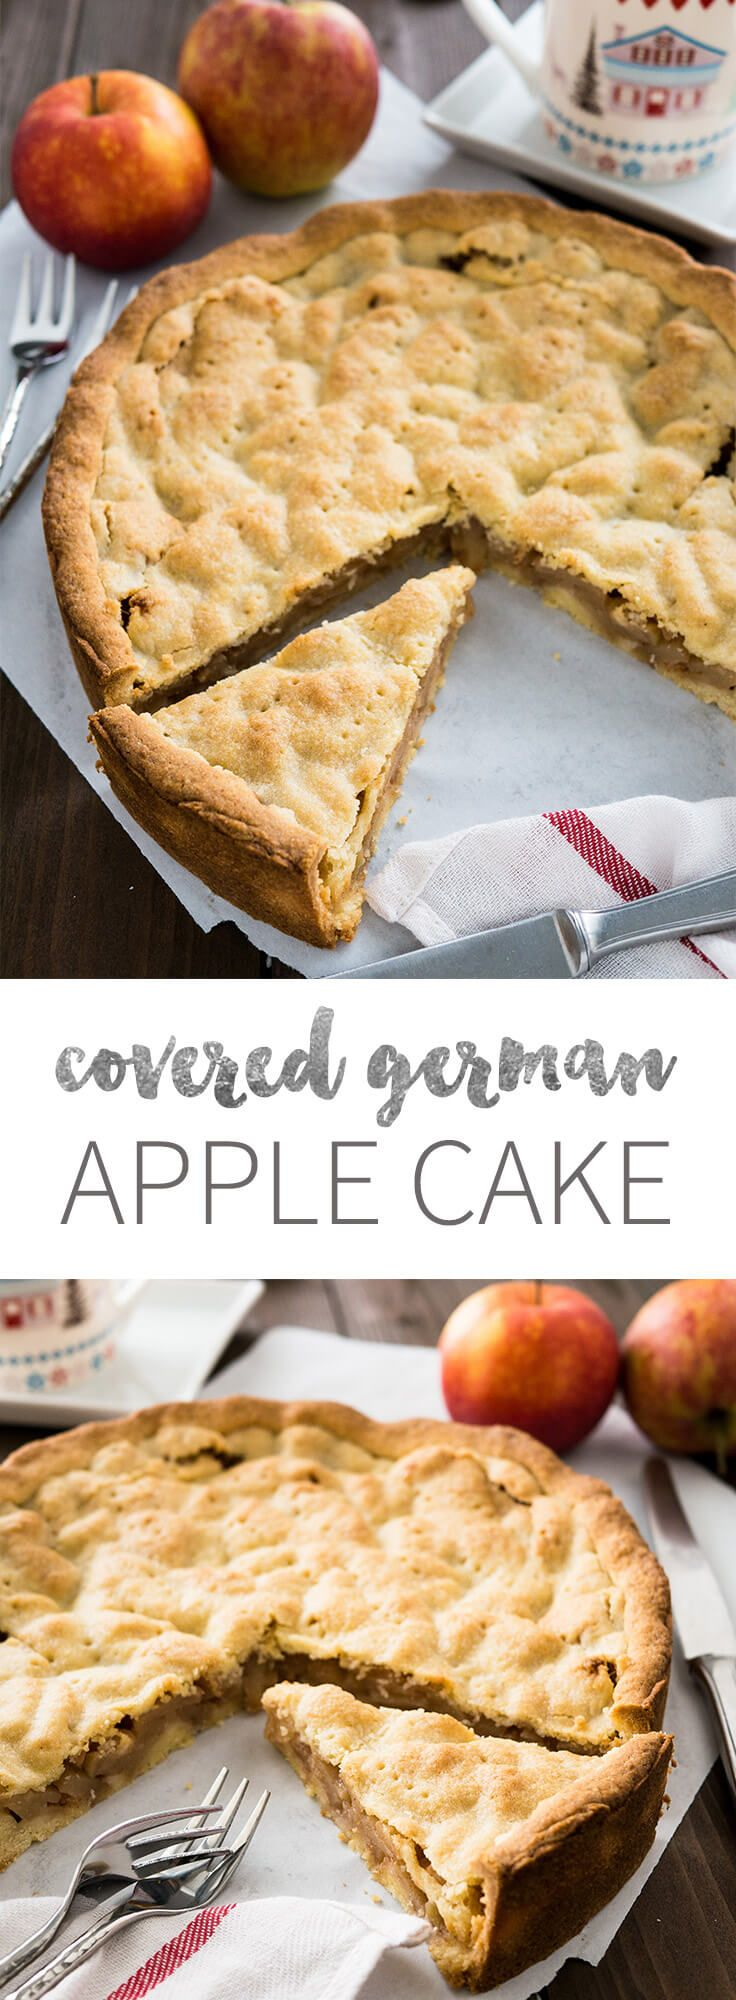 This Covered German Apple Cake is one of the best apple cakes! Filled with…